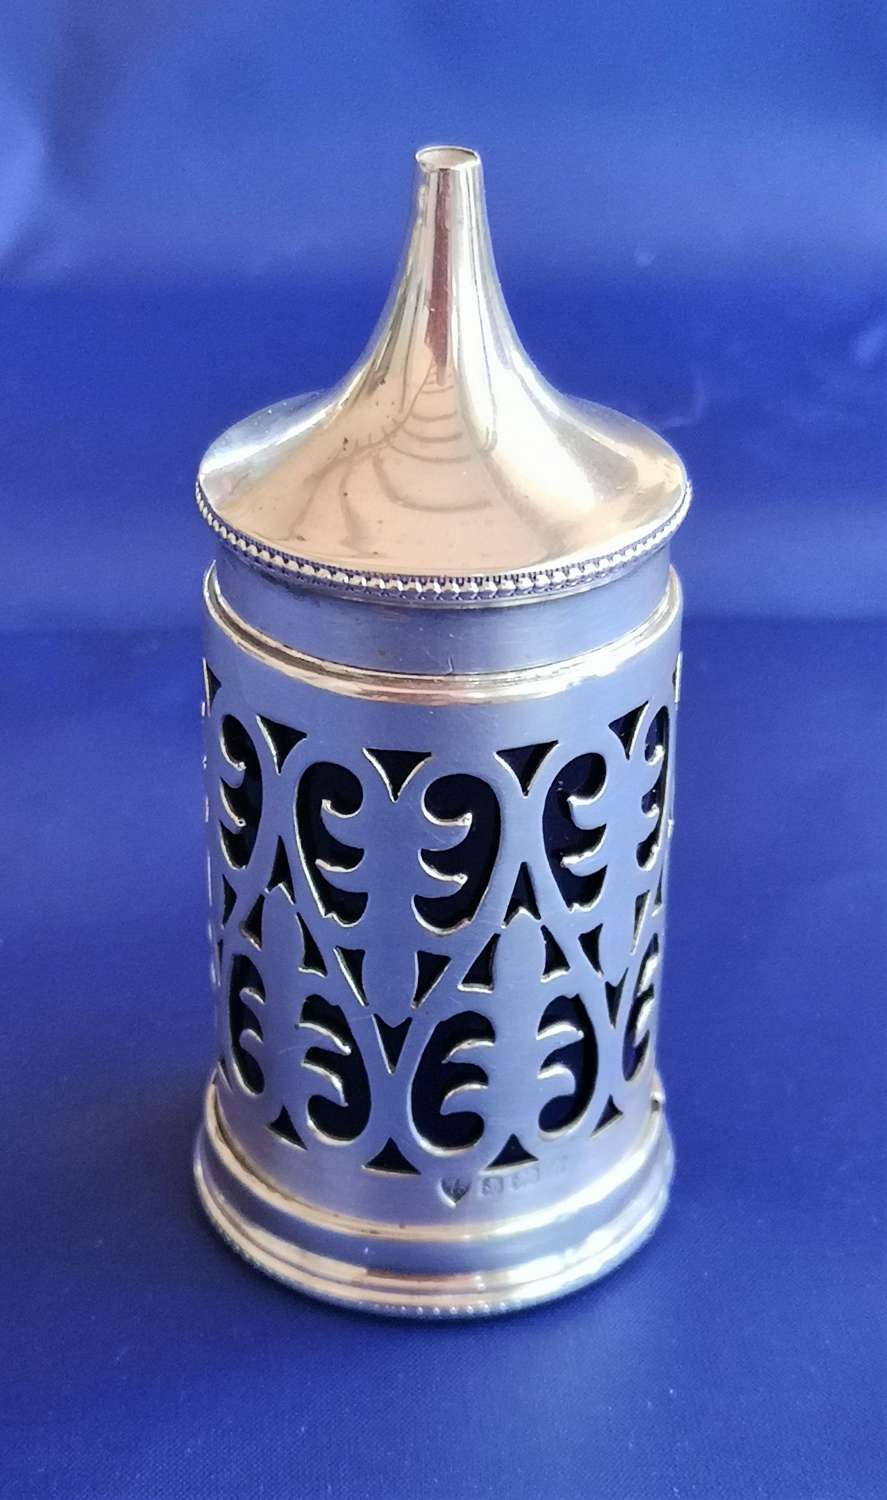 Sterling silver mustard container from Birmingham, England year 1925